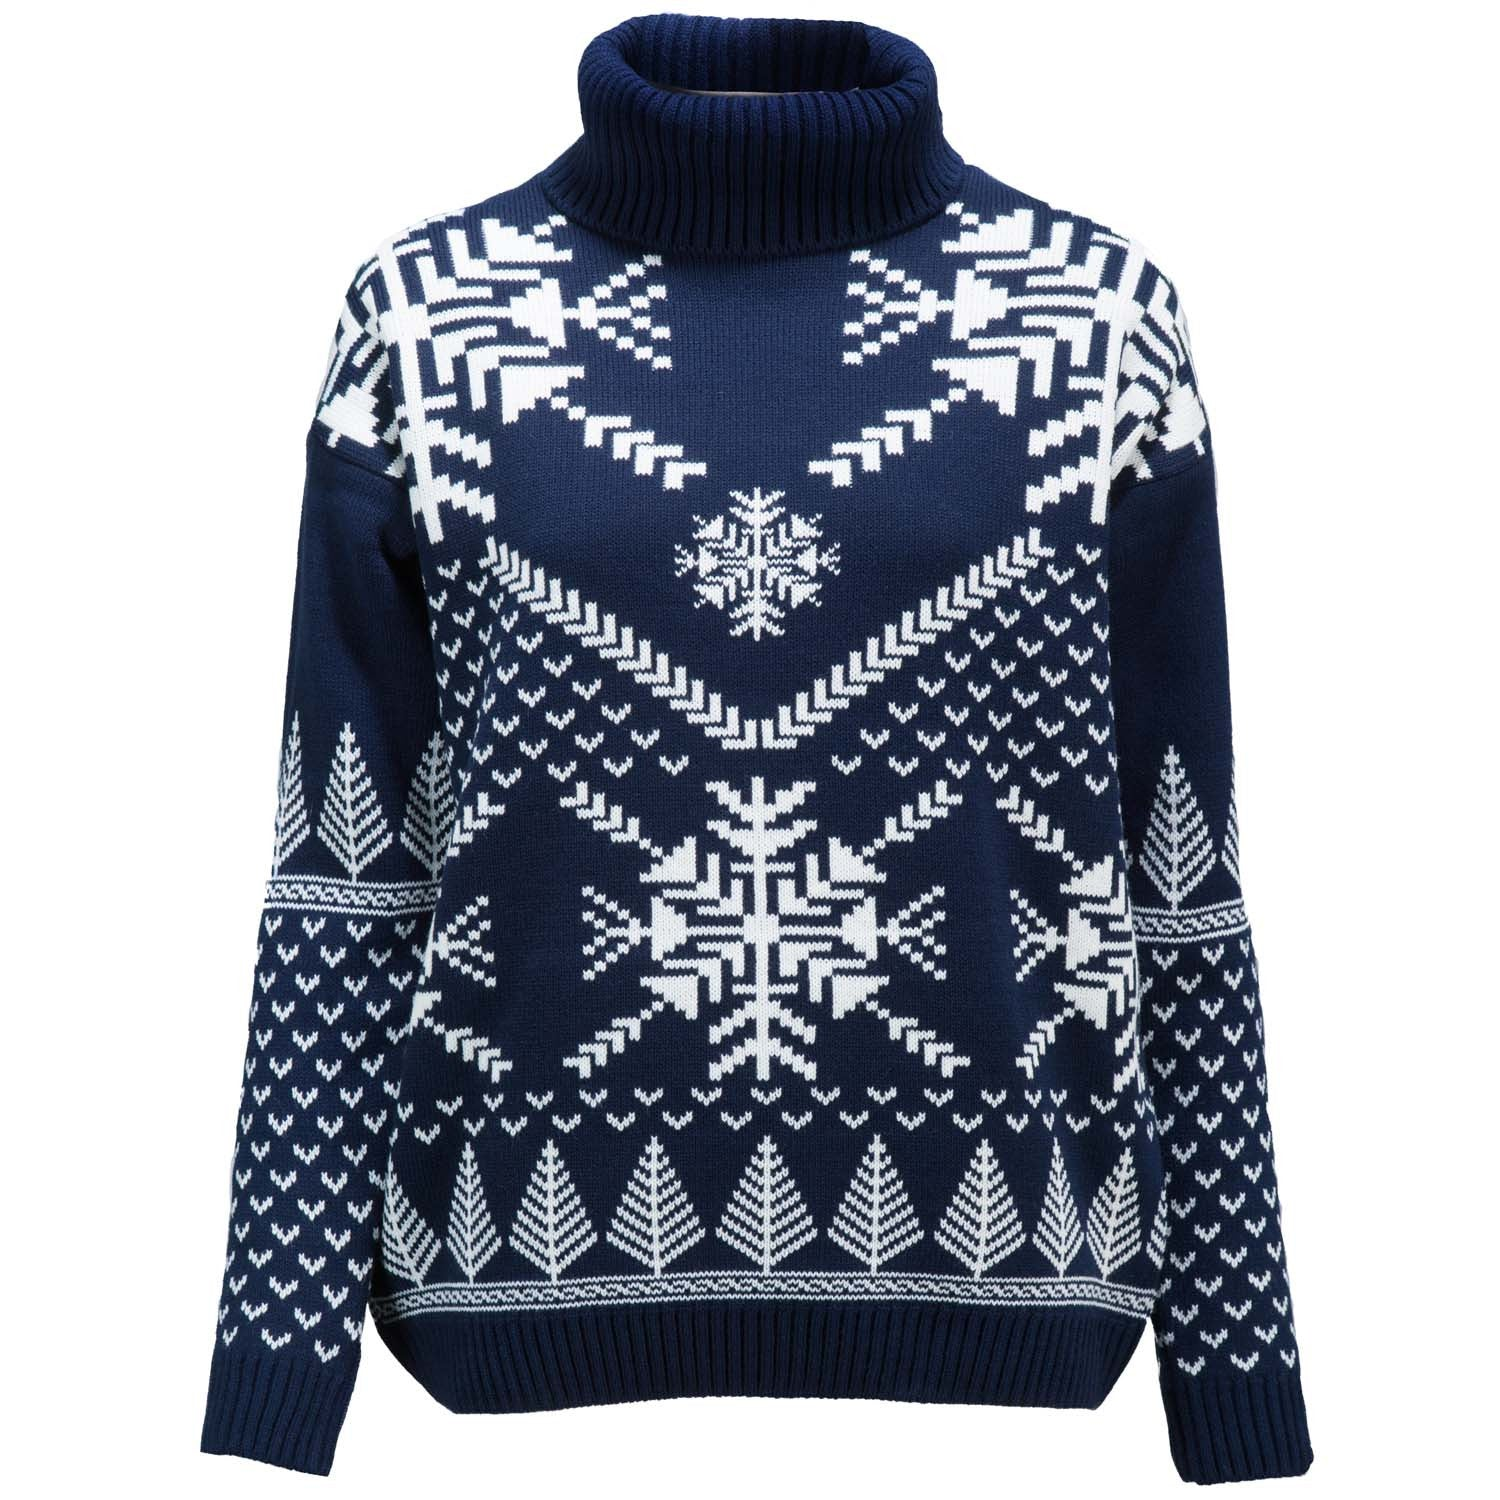 Snowflake Polo Neck   Womens Christmas Jumper